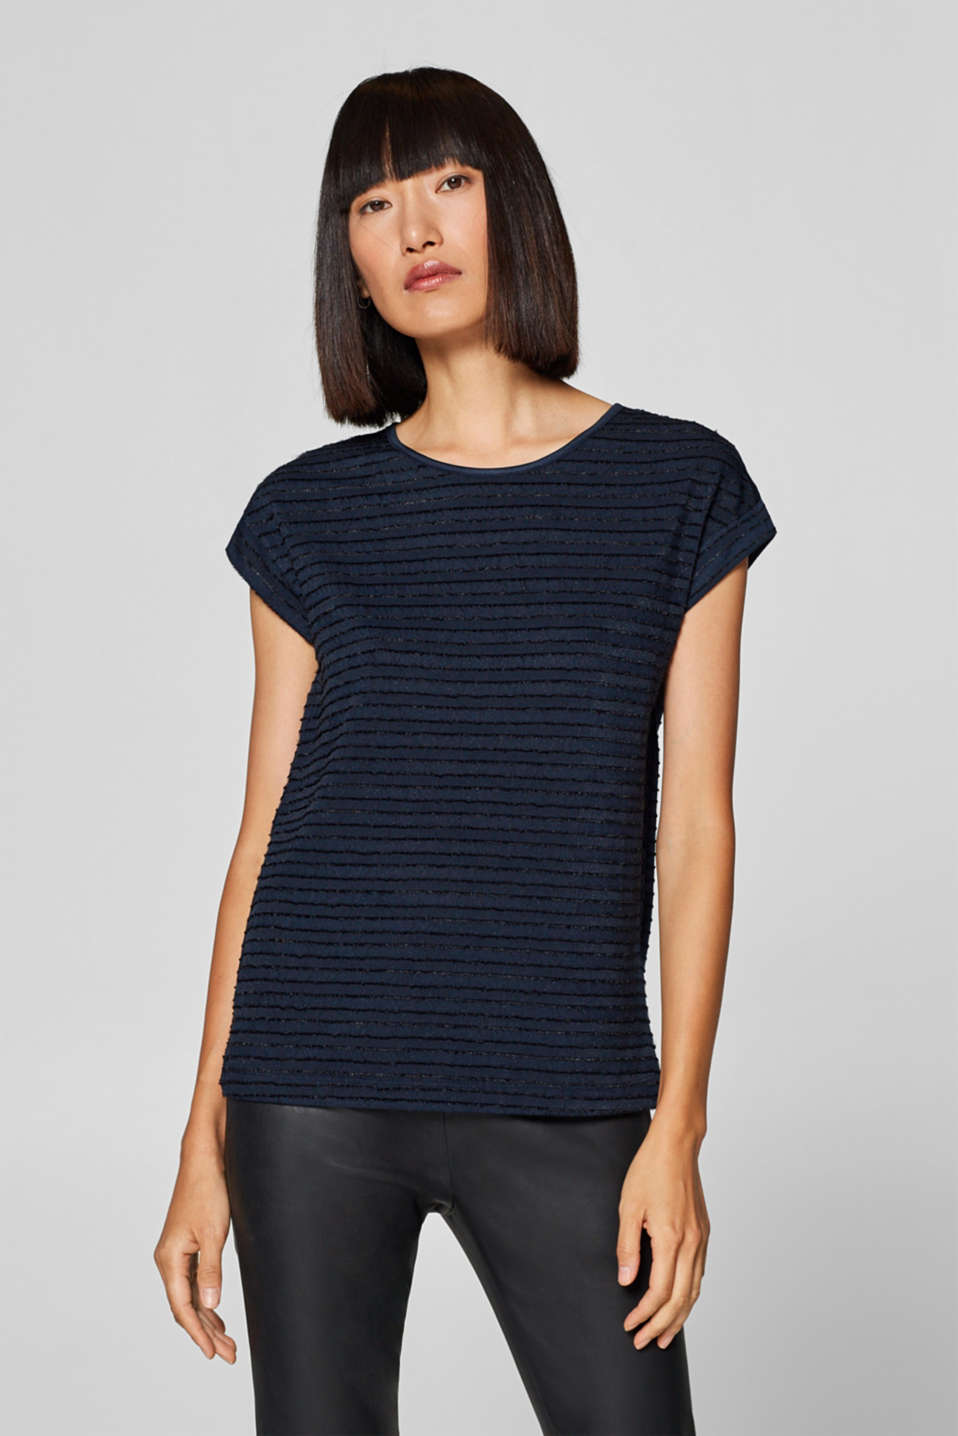 Esprit - Top with velvety textured stripes